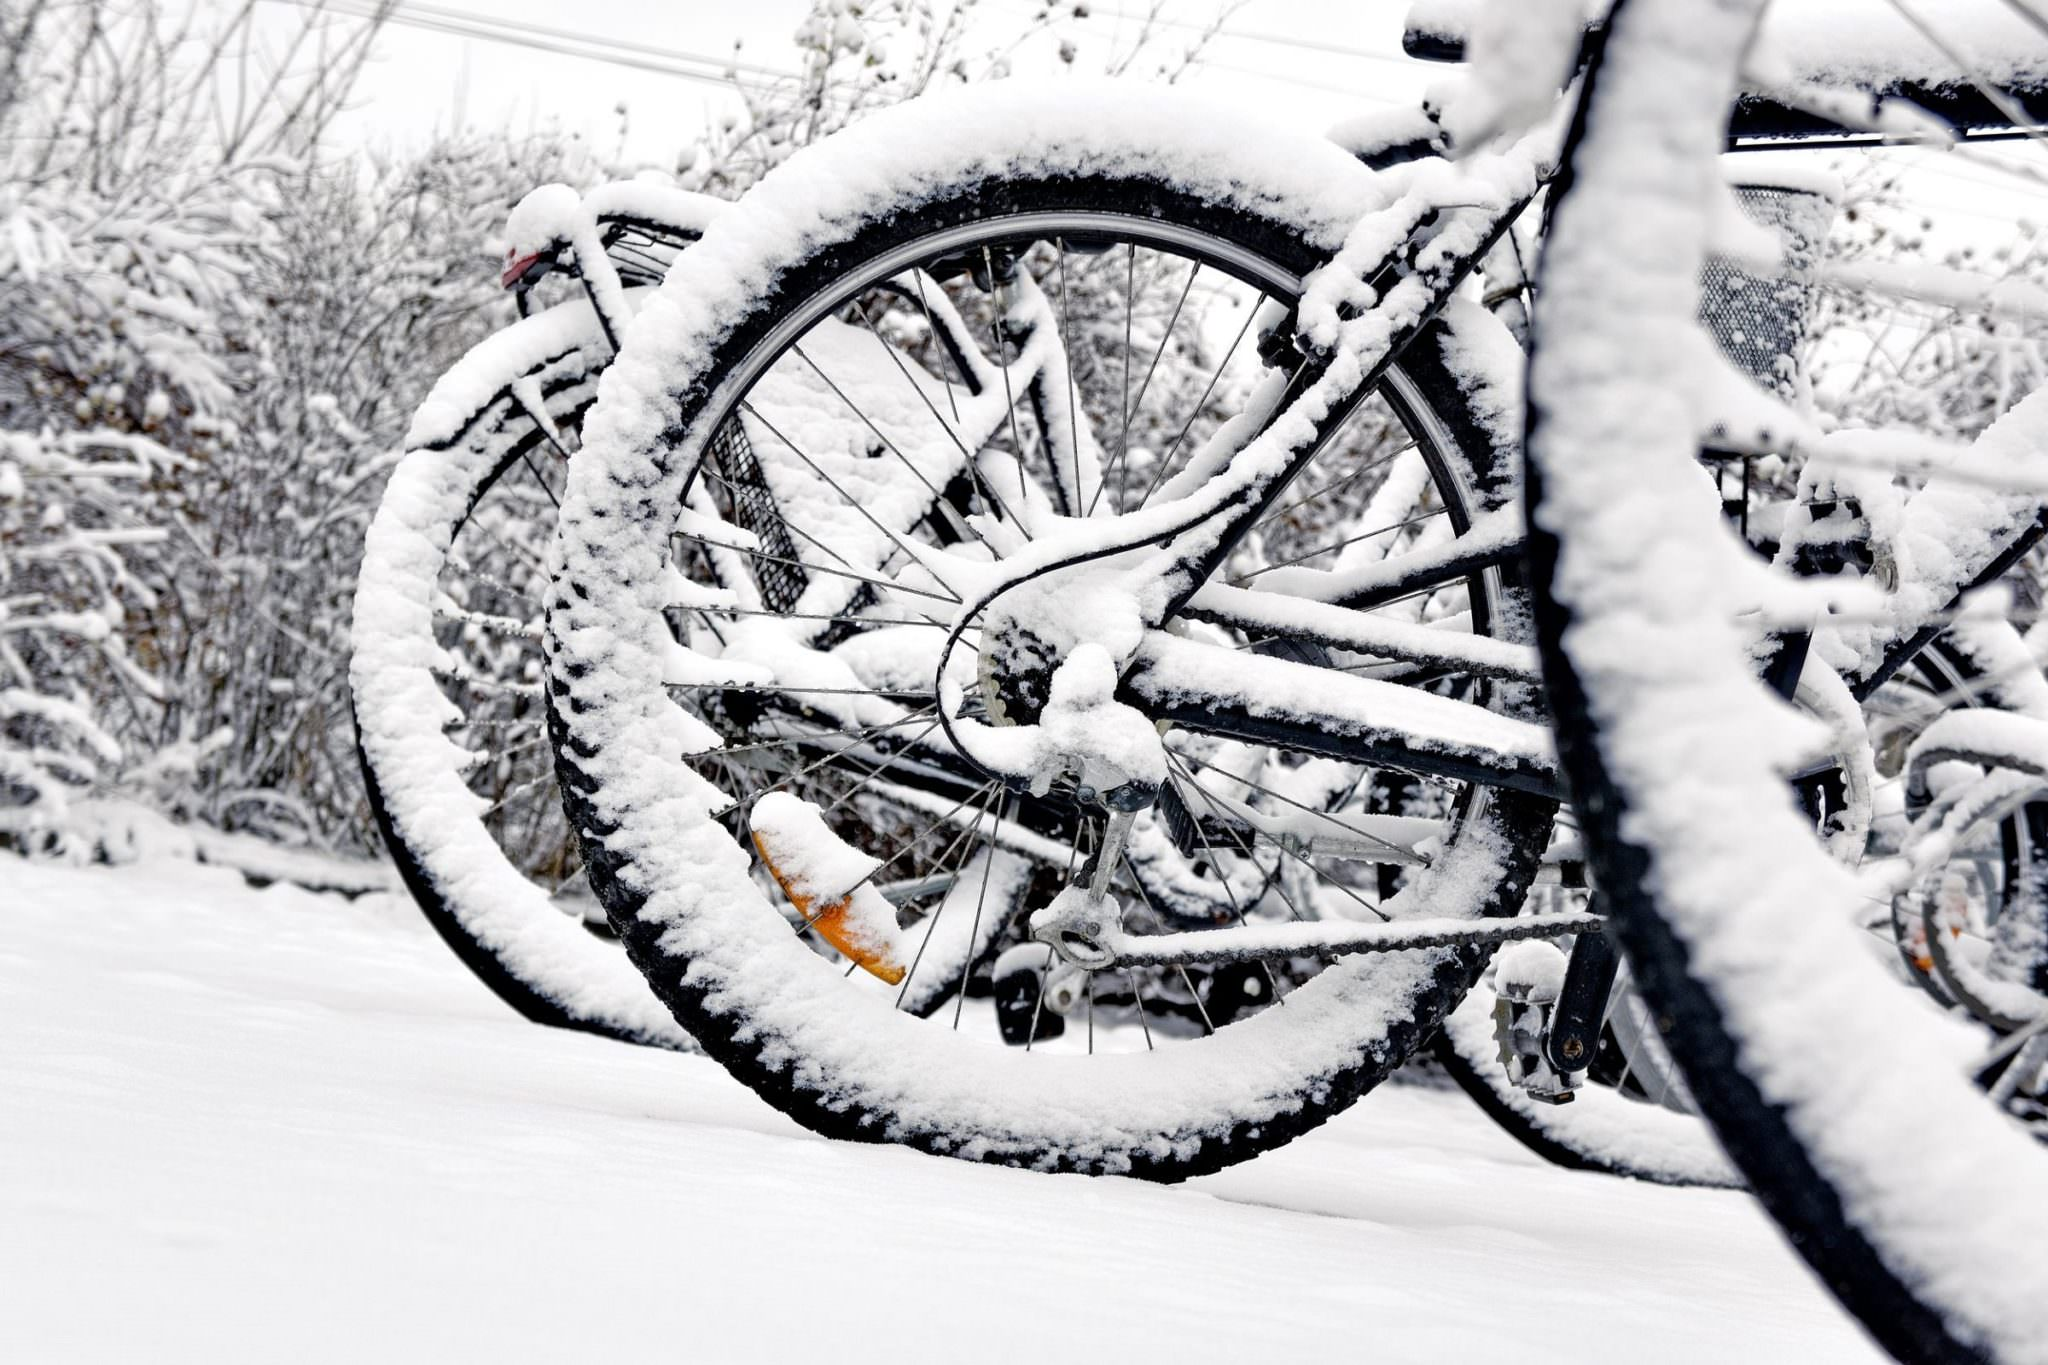 Bike fenders in snow